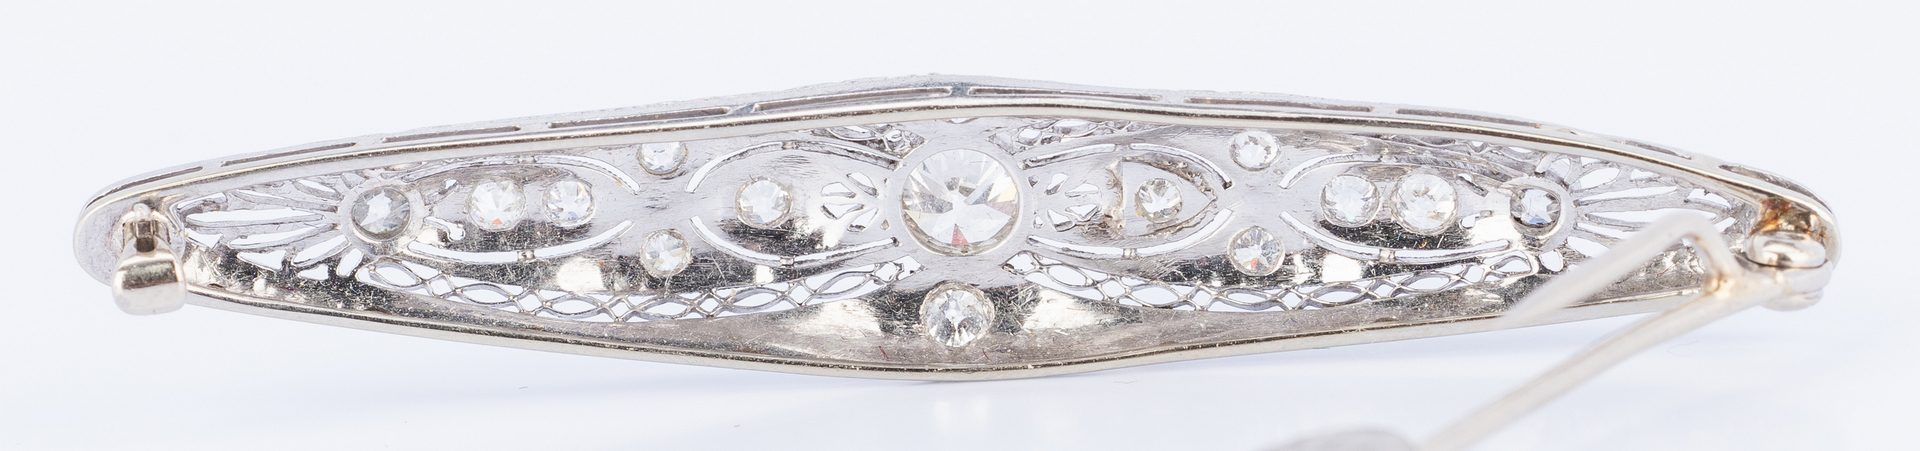 Lot 642: 14k Antique Diamond Brooch/Pendant